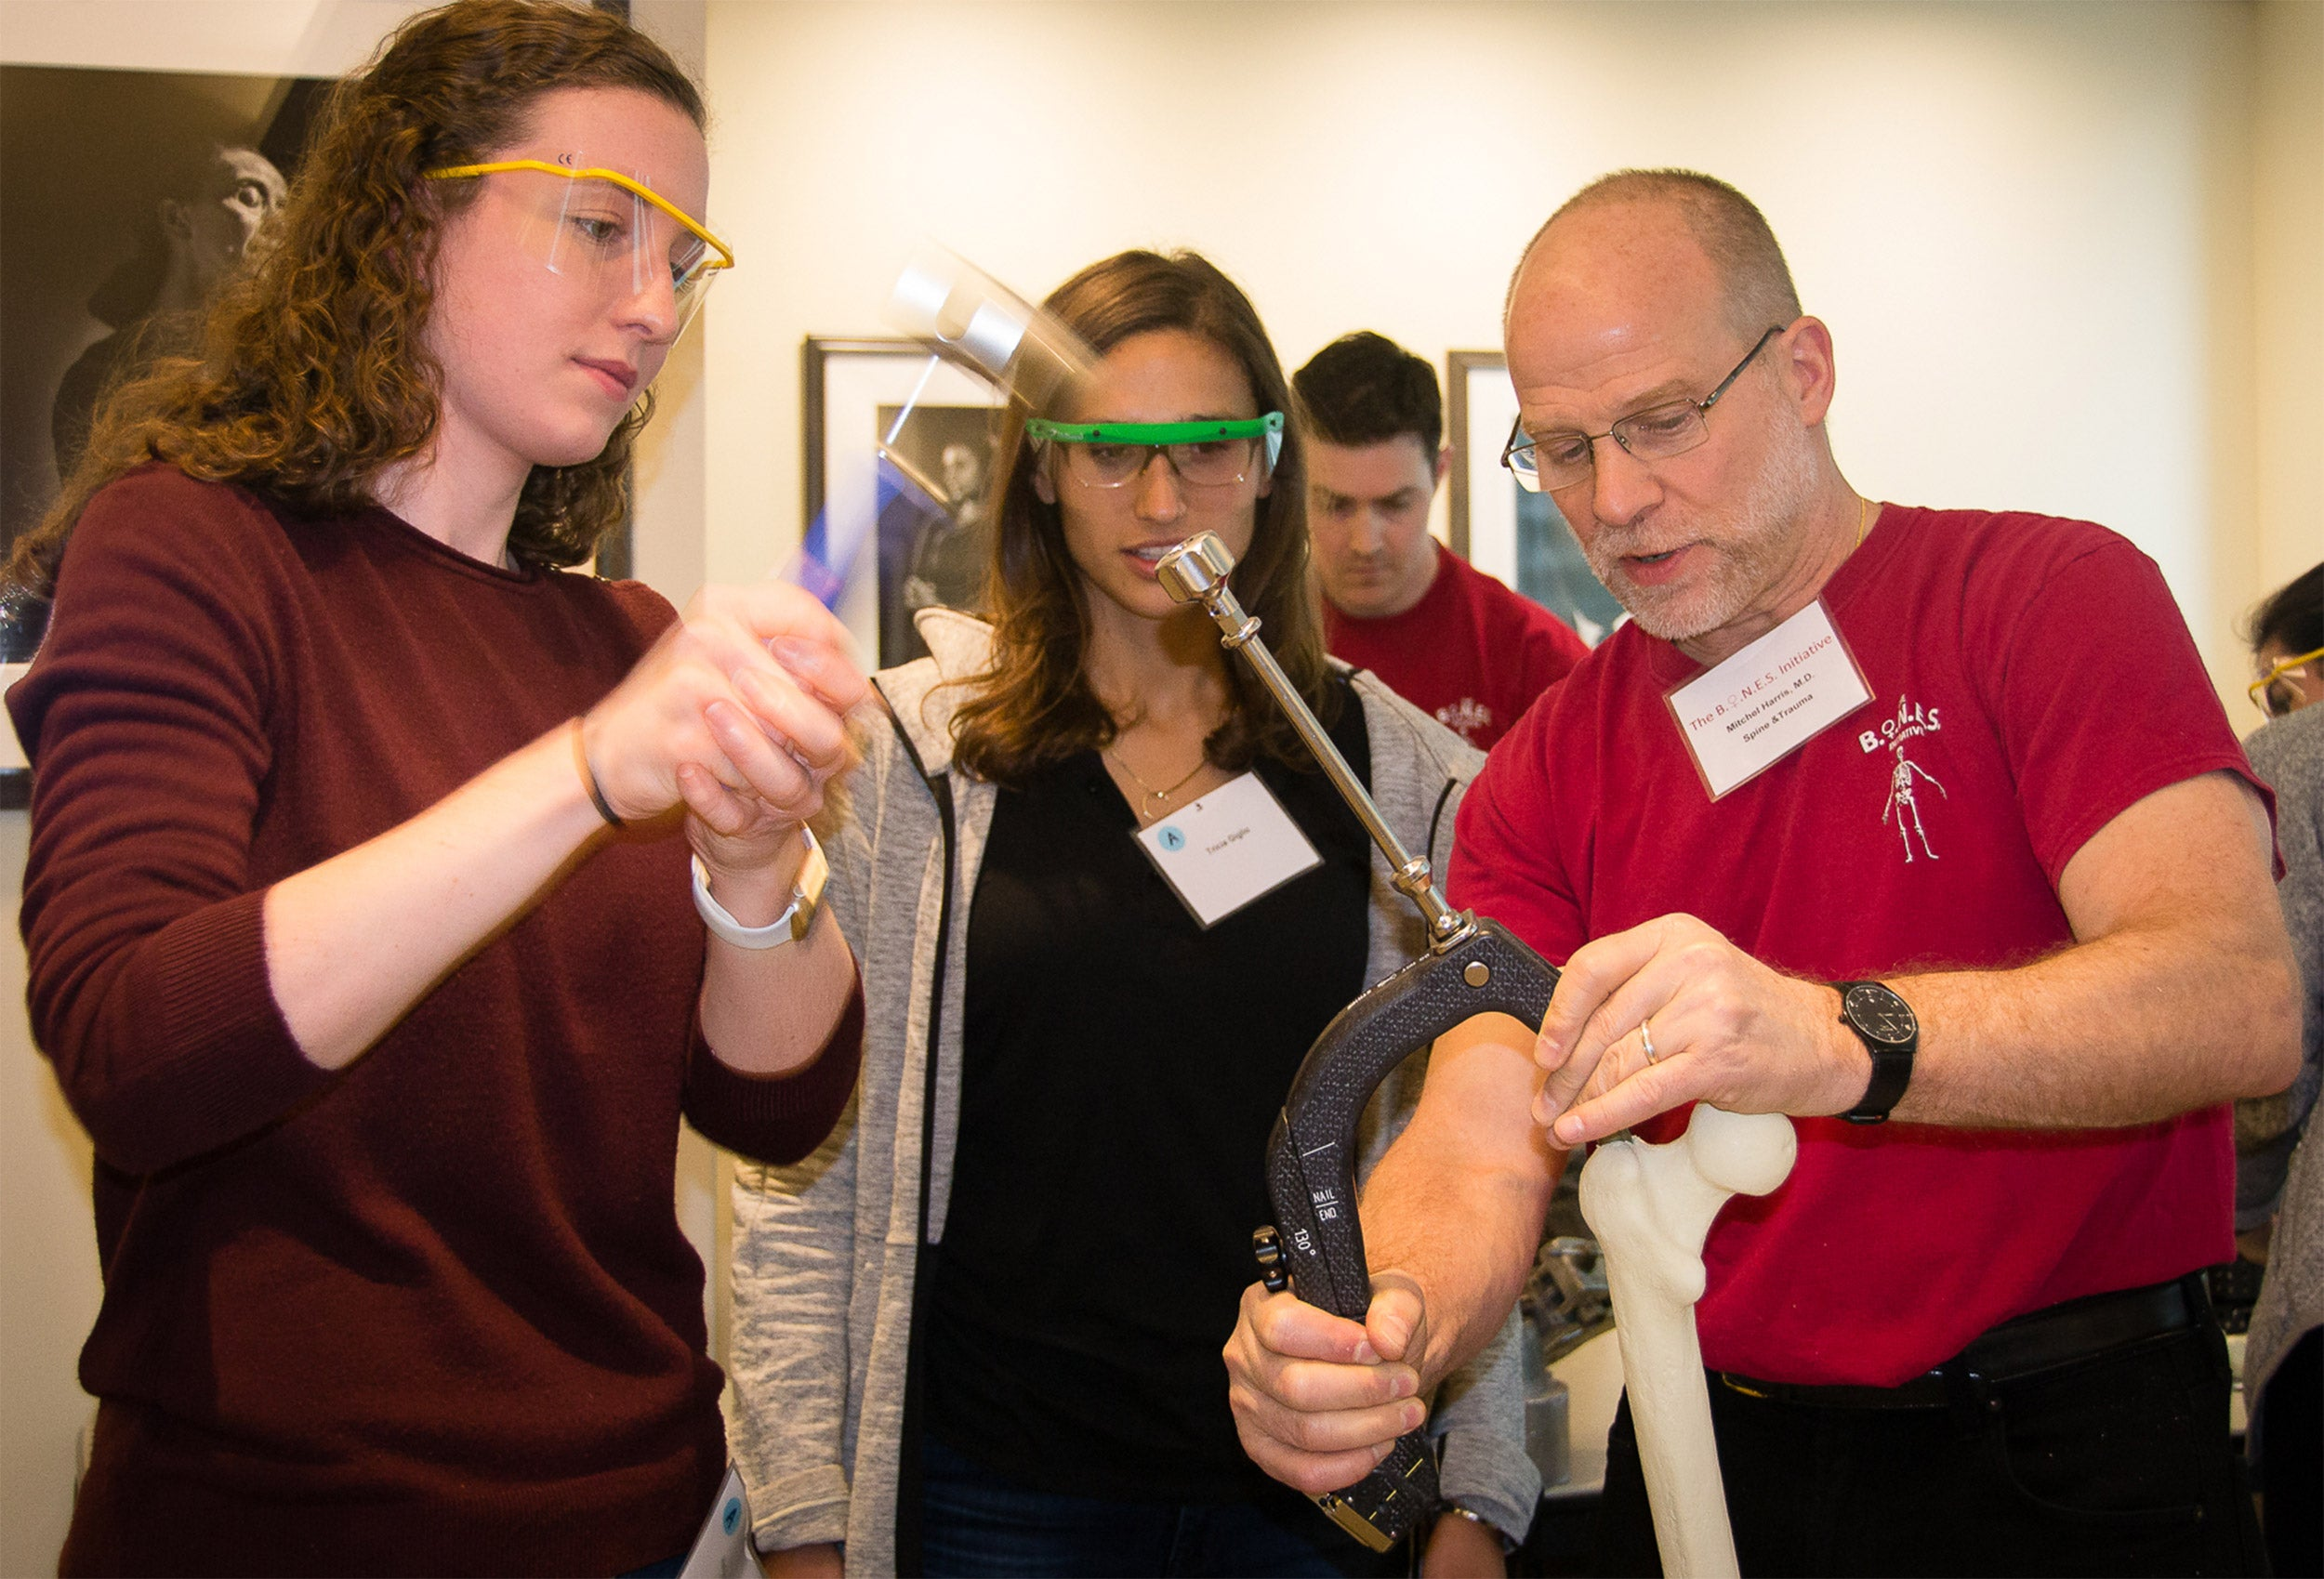 Mitchel Harris demonstrates to Heleyn Grissom (left) and Tricia Giglio methods to place an intramedullary nail on a femur sawbones model.